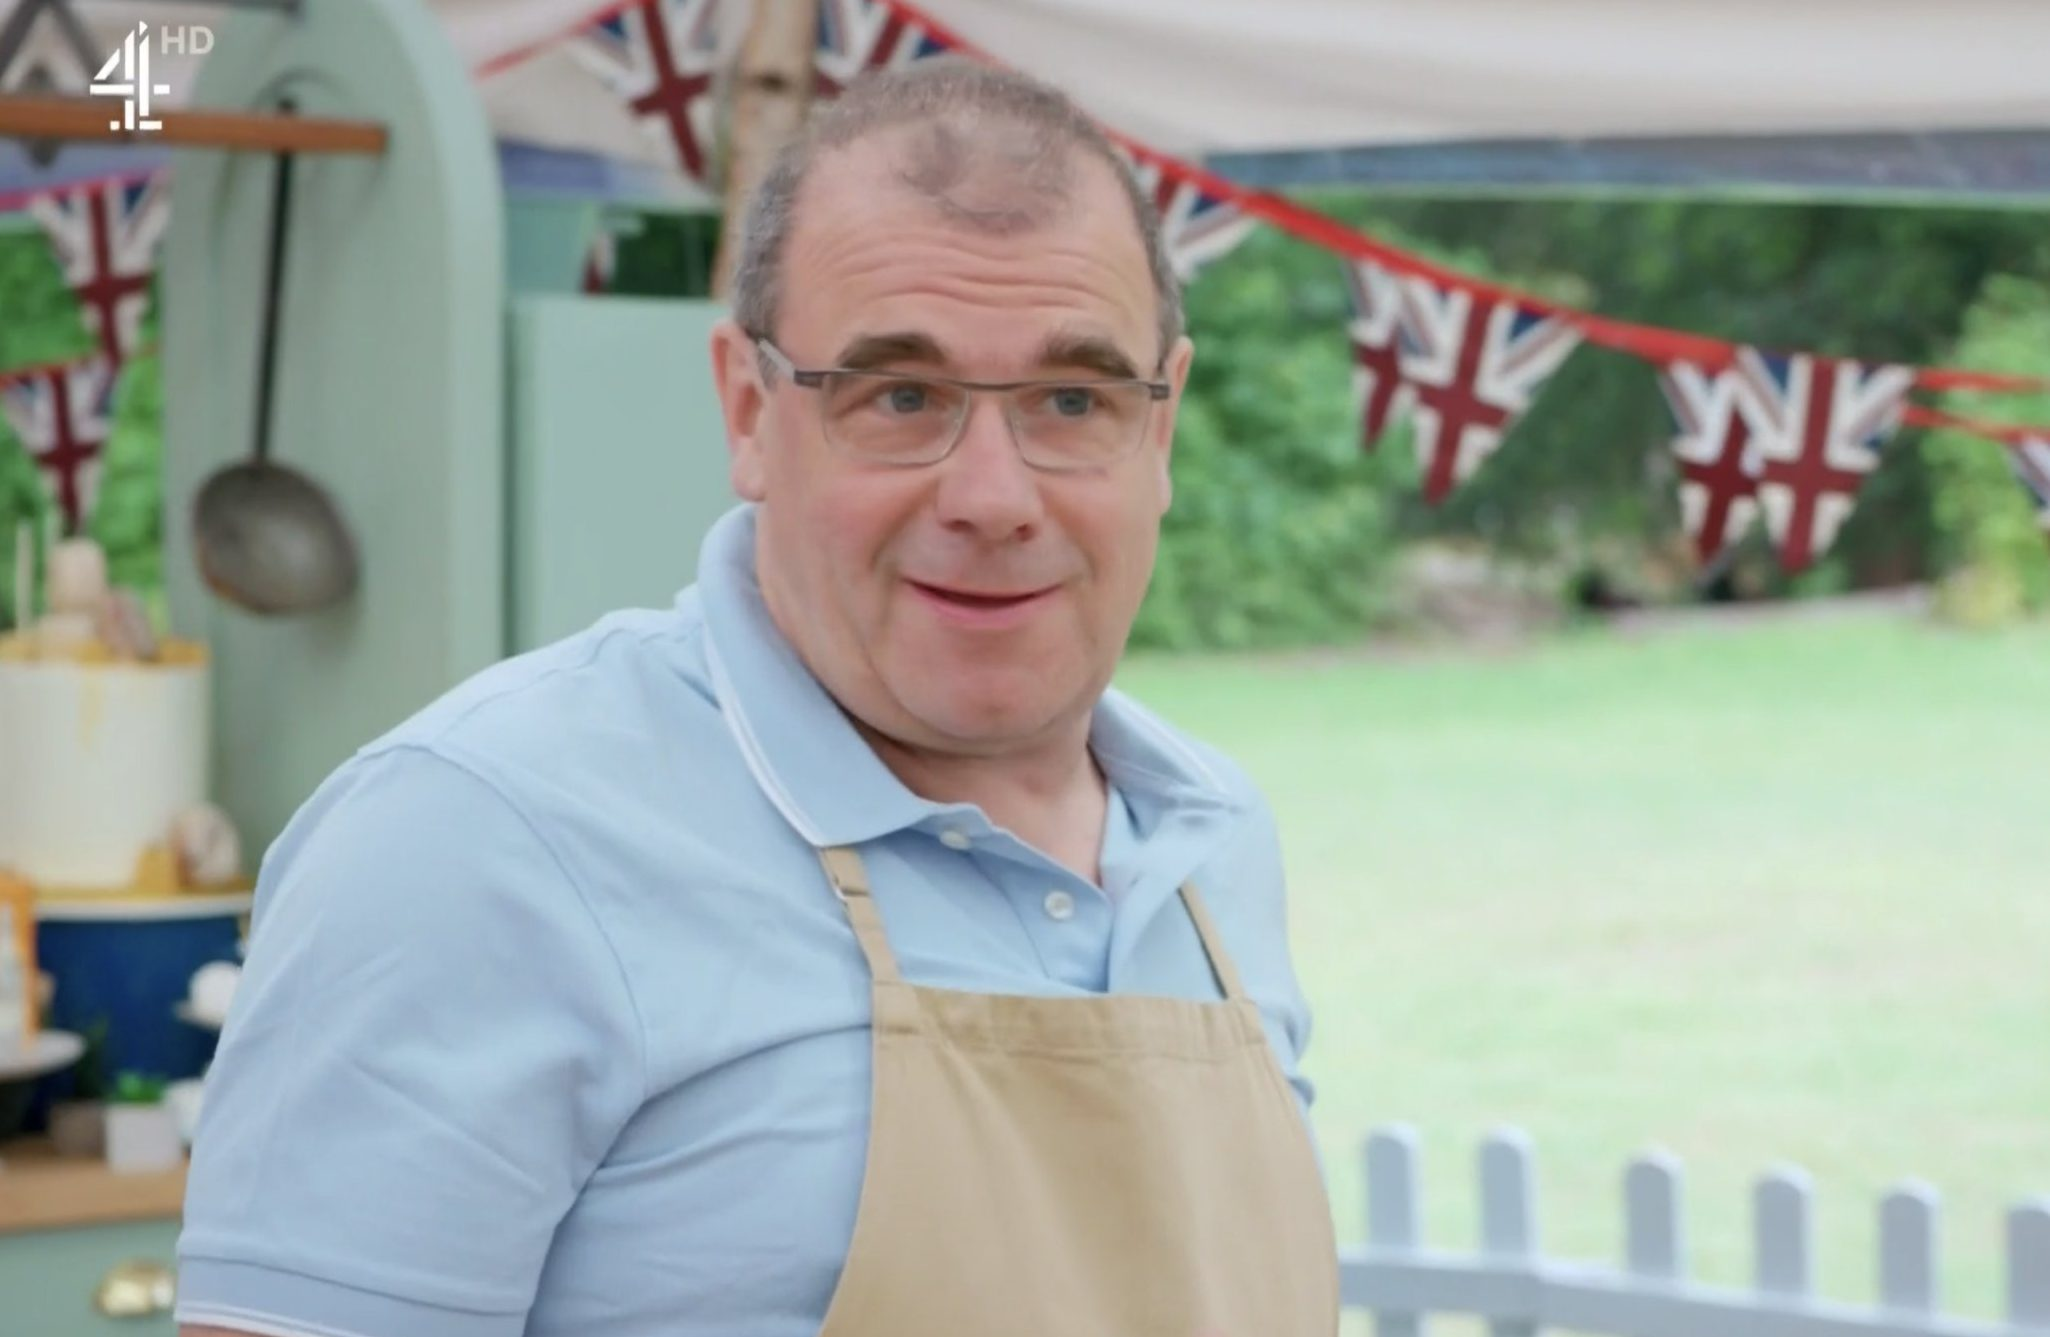 Jürgen in the Great British Bake Off tent, wearing a blue shirt and beige apron.